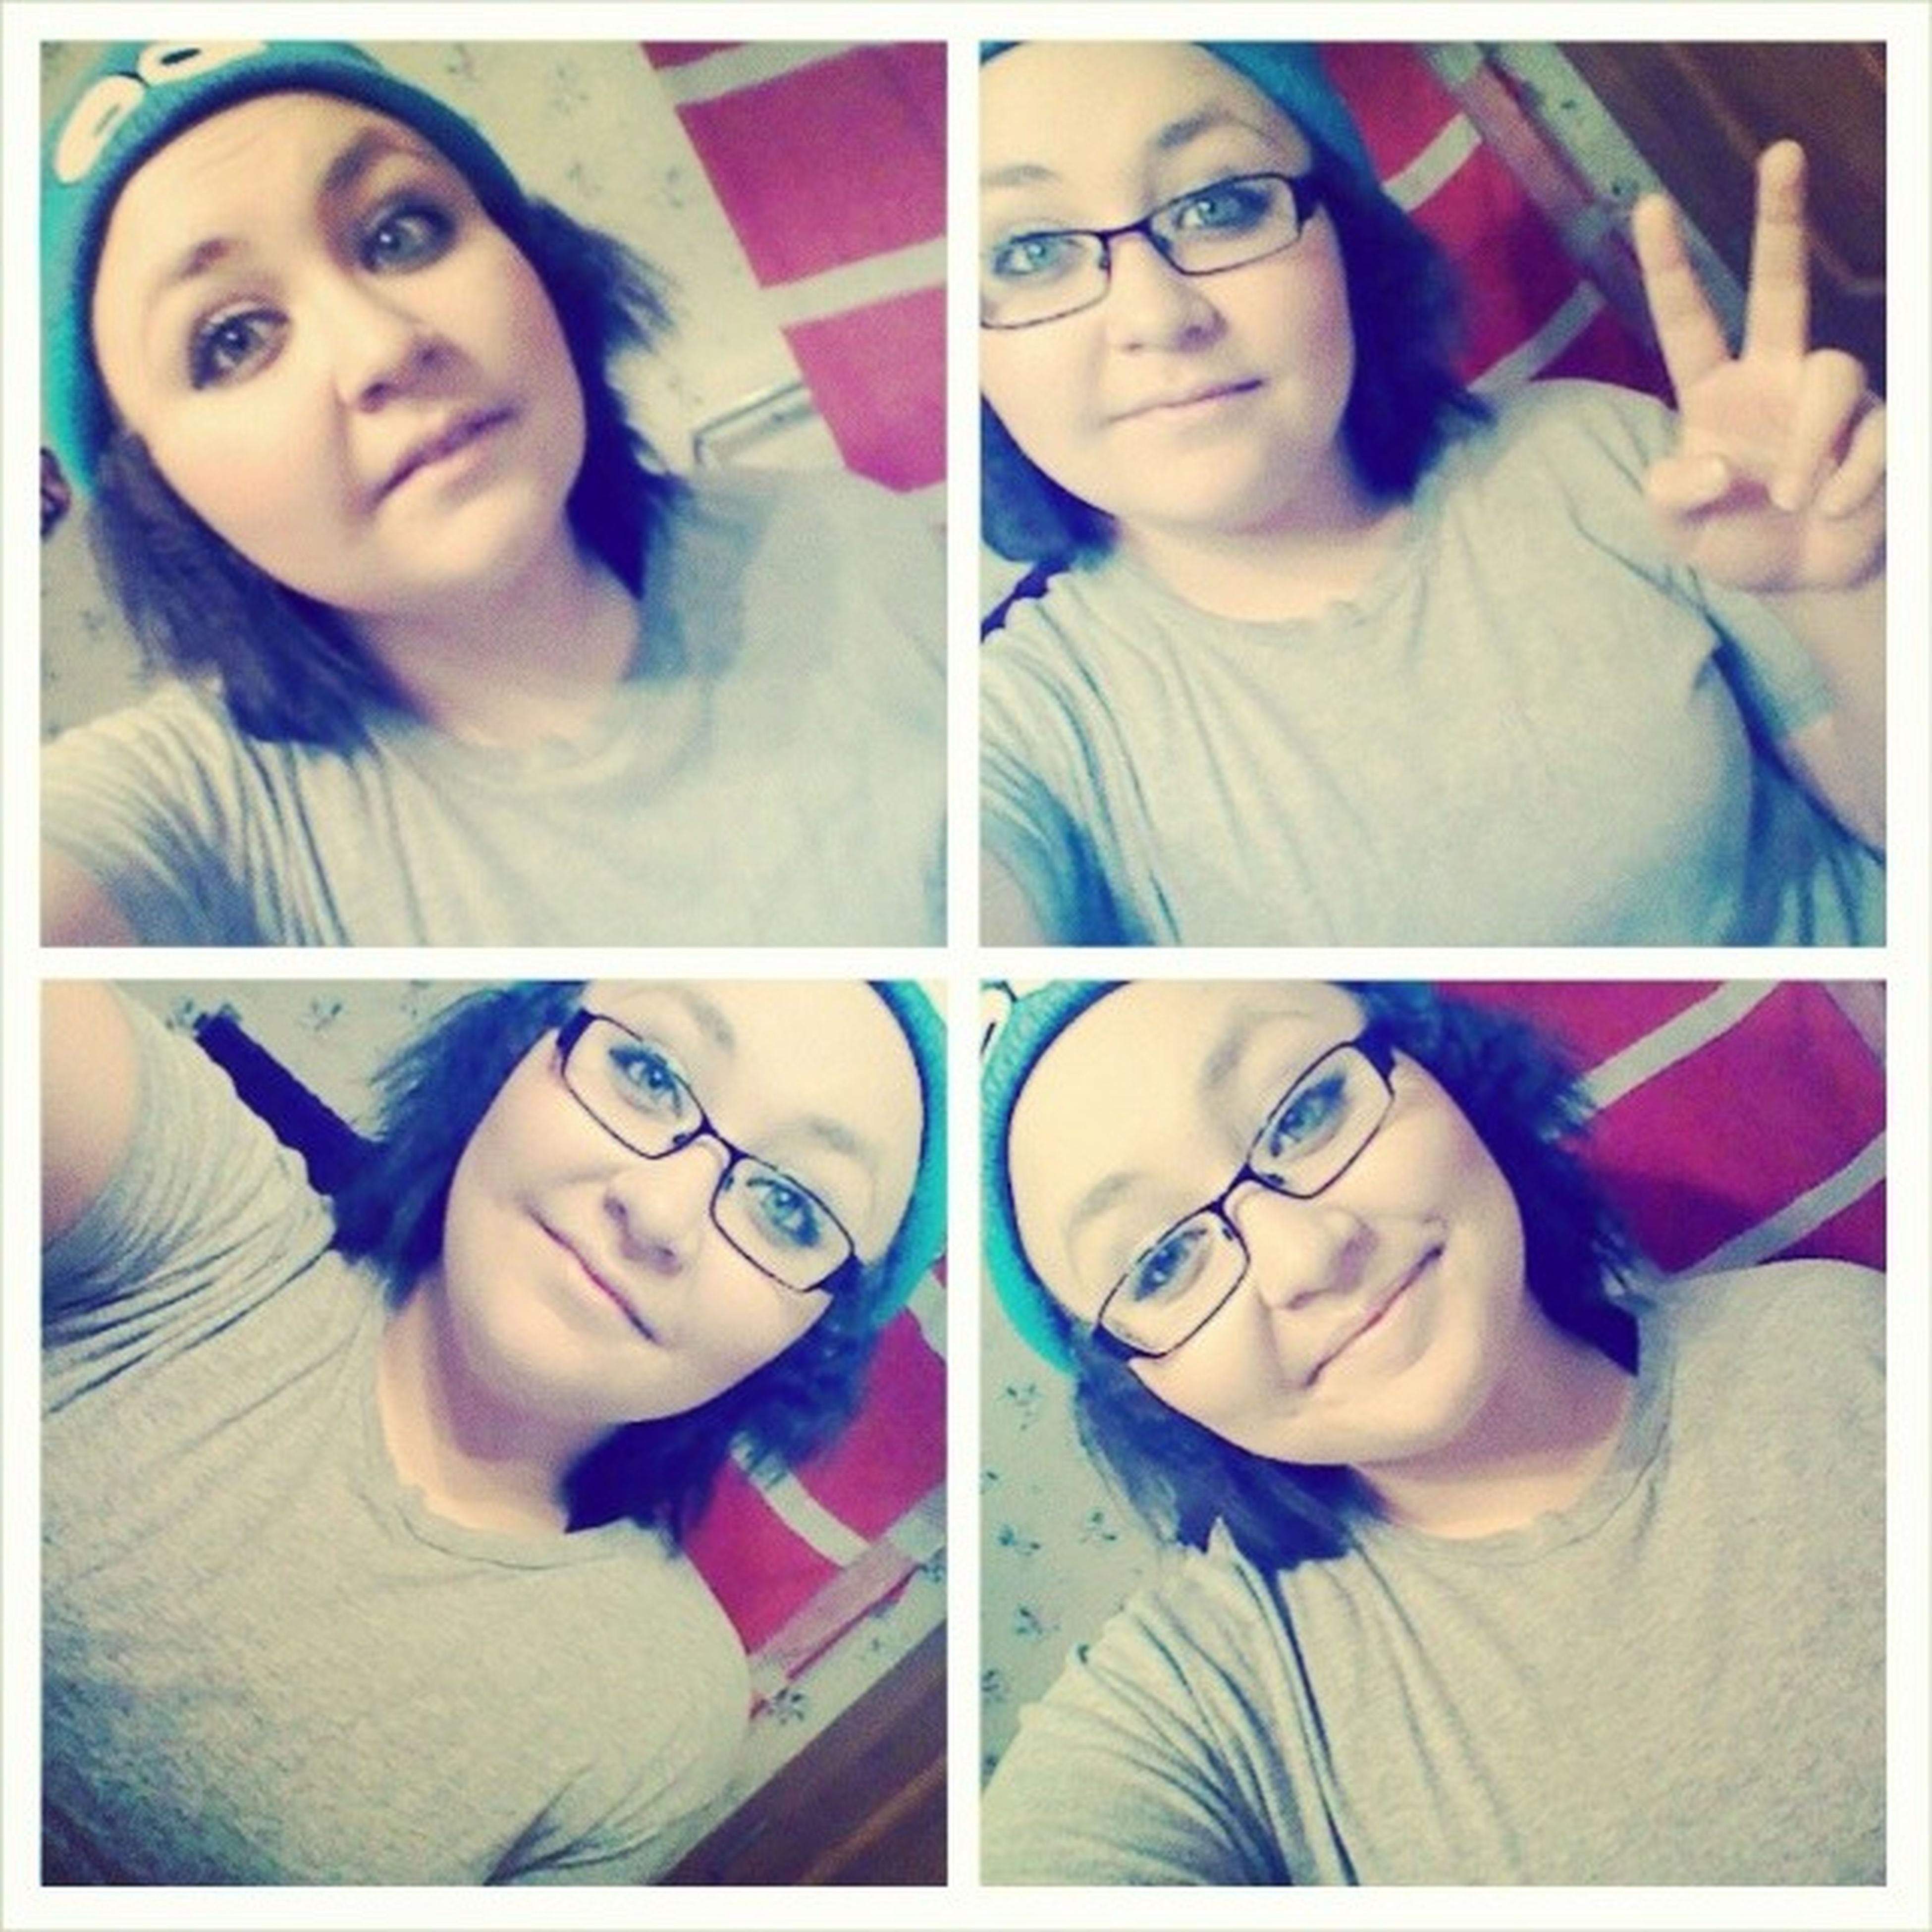 CookieMonsterBeanie Nerd Smiles Peace happiness PursuitOfHappiness ♥